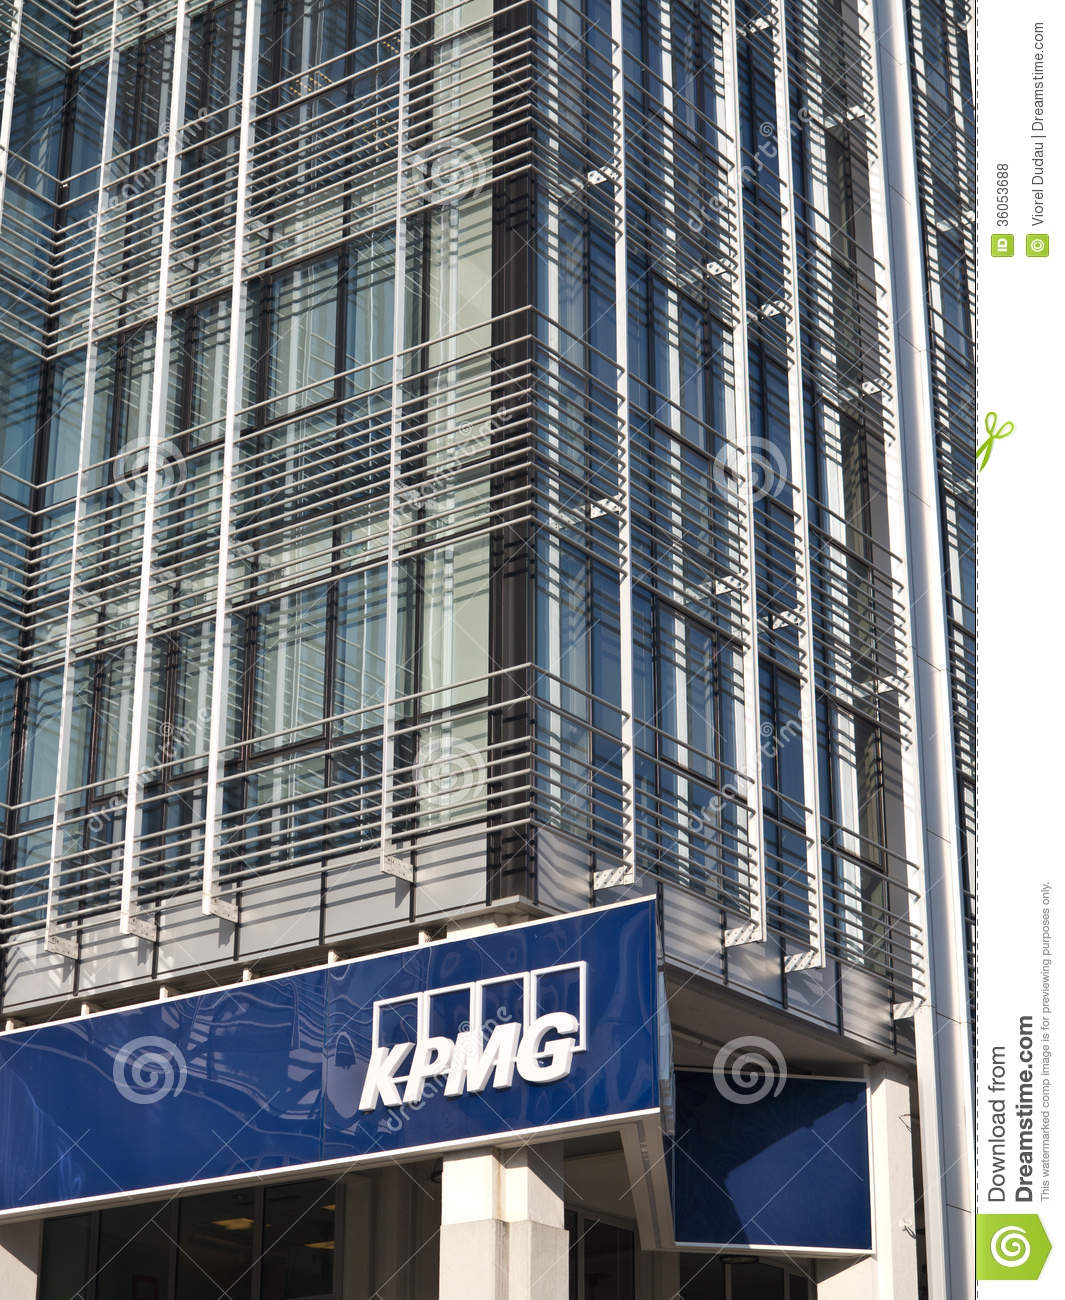 Kpmg branch editorial stock photo image 36053688 for Firm company